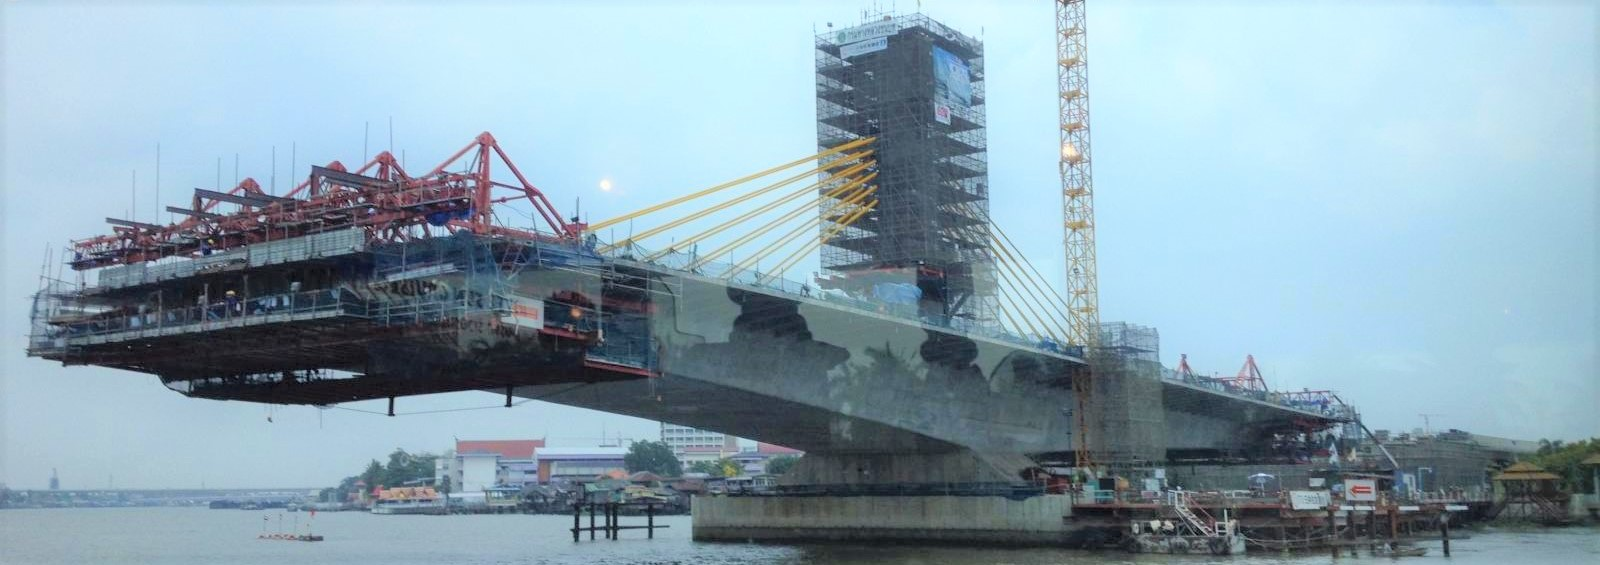 Bangkok bridge construction (Photo: Flickr/Harry Wood)